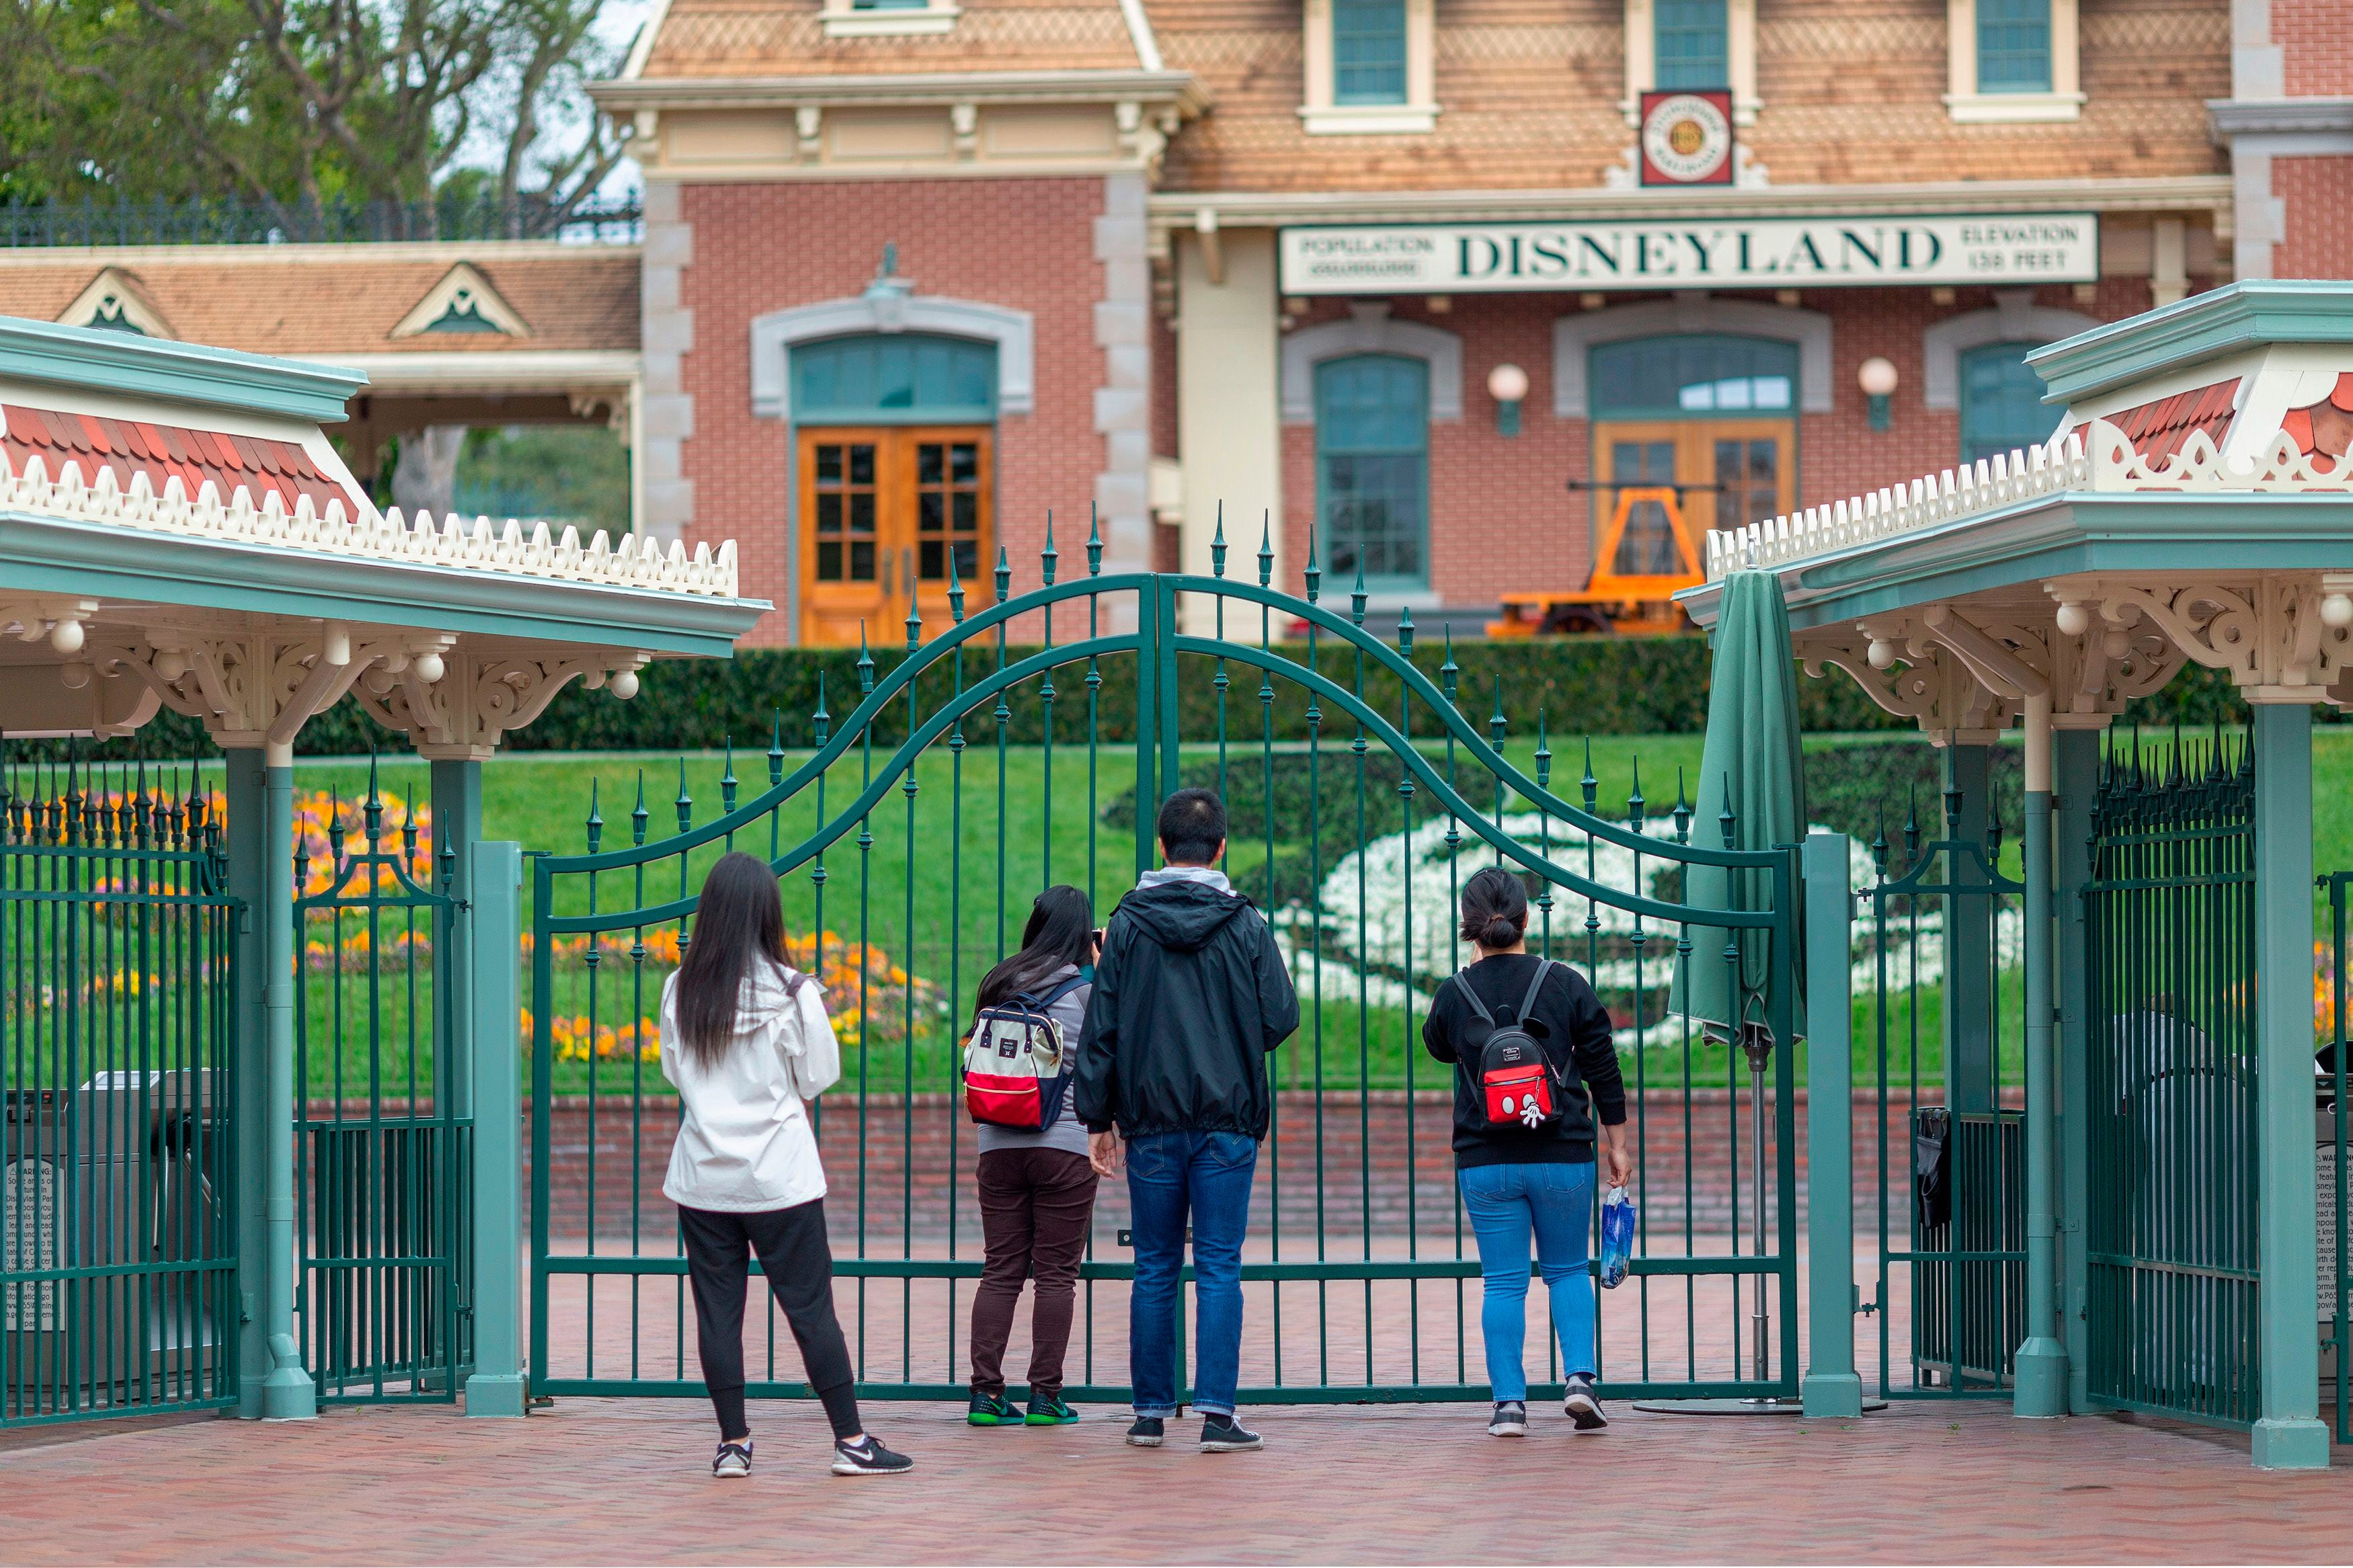 Disney's limited experience: California Adventure Park to reopen in March for outdoor dining